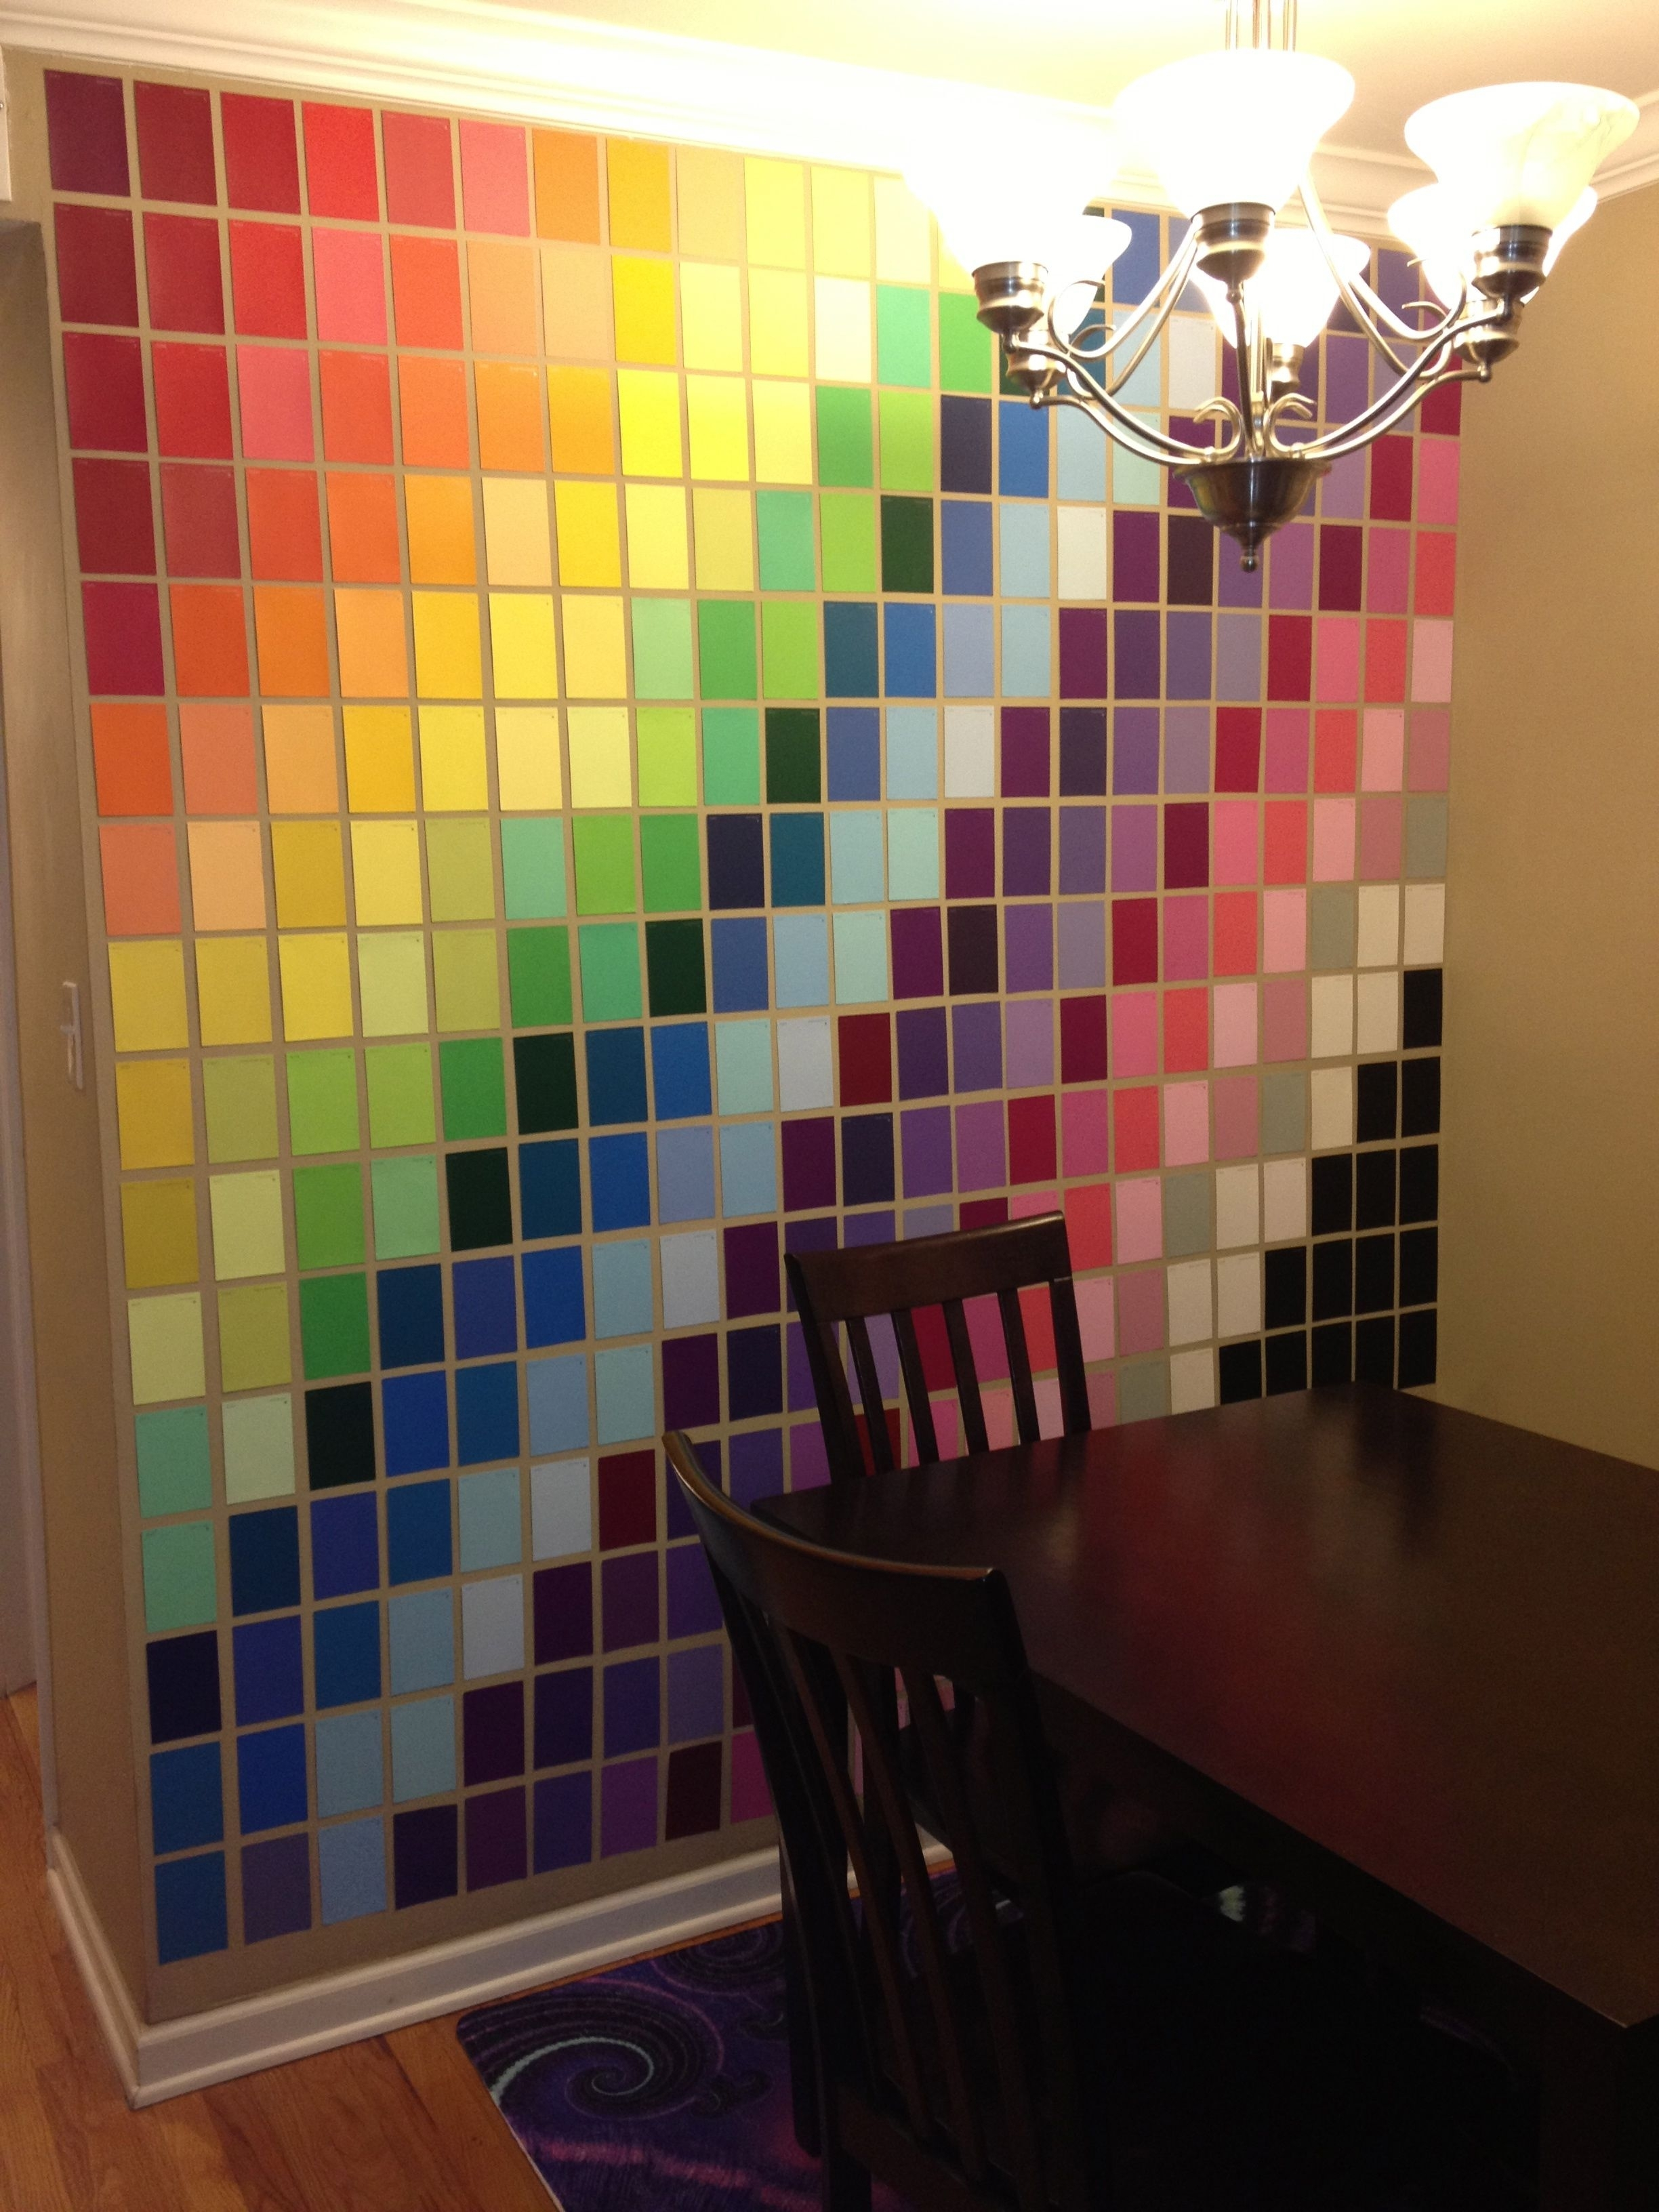 Wall Art Made With Paint Samples From Home Depot (View 15 of 15)